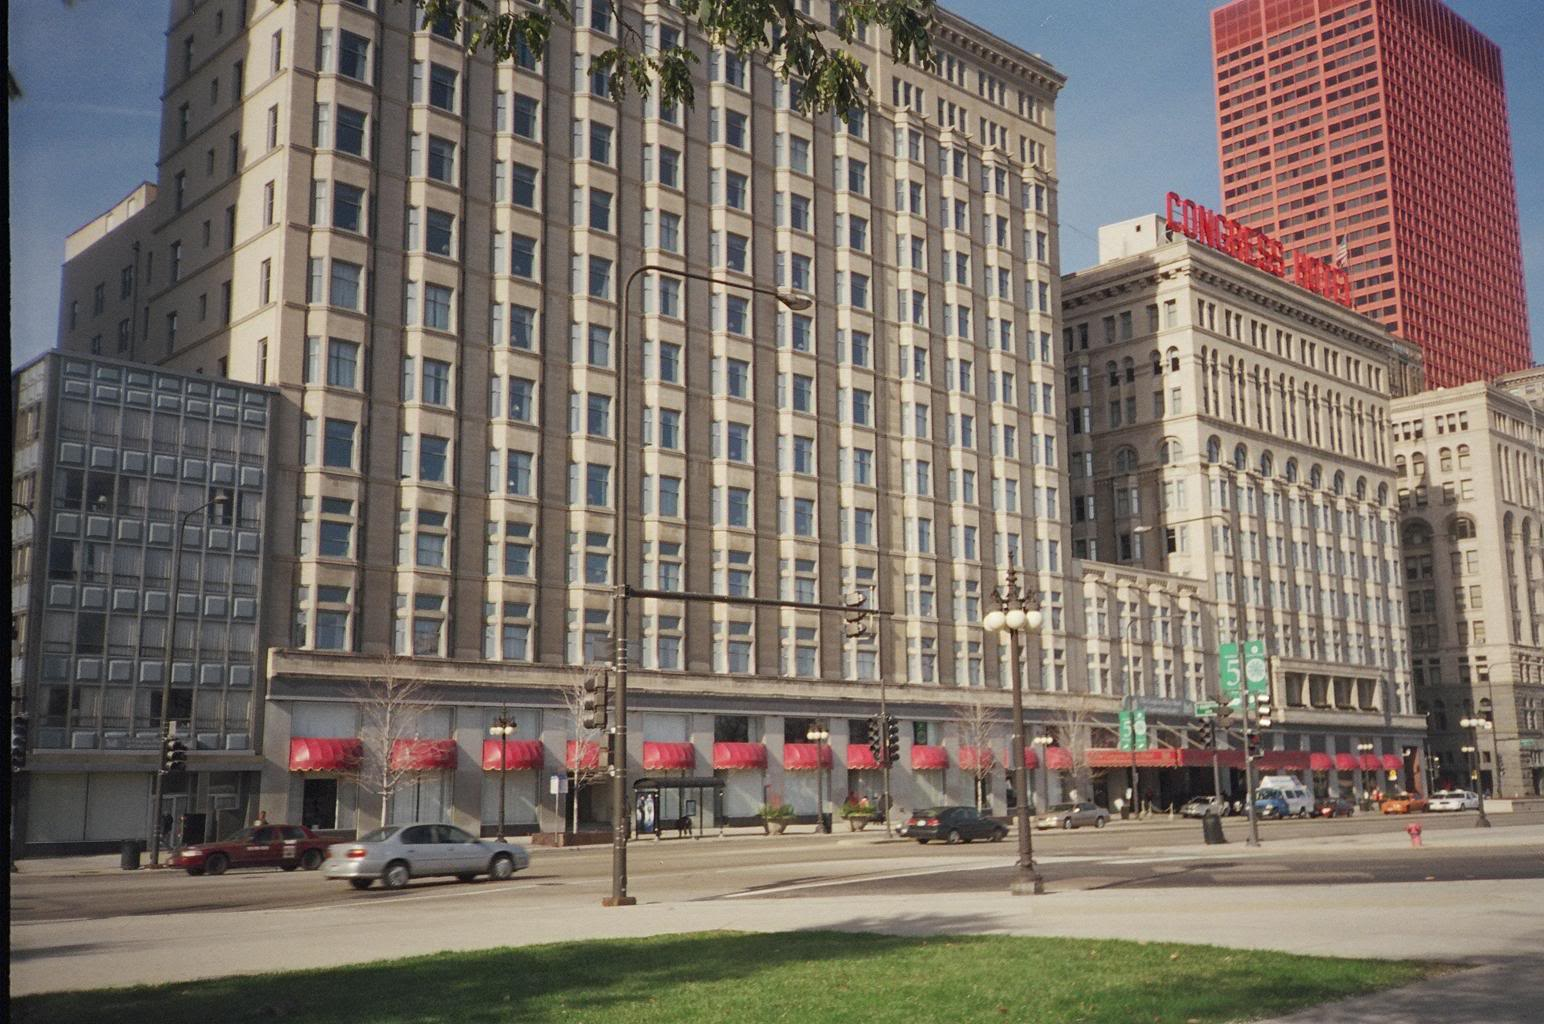 The Congress Plaza Hotel Stands On Michigan Ave In Nation S Windy City Of Chicago Reported To Be Most Haunted It Was Built